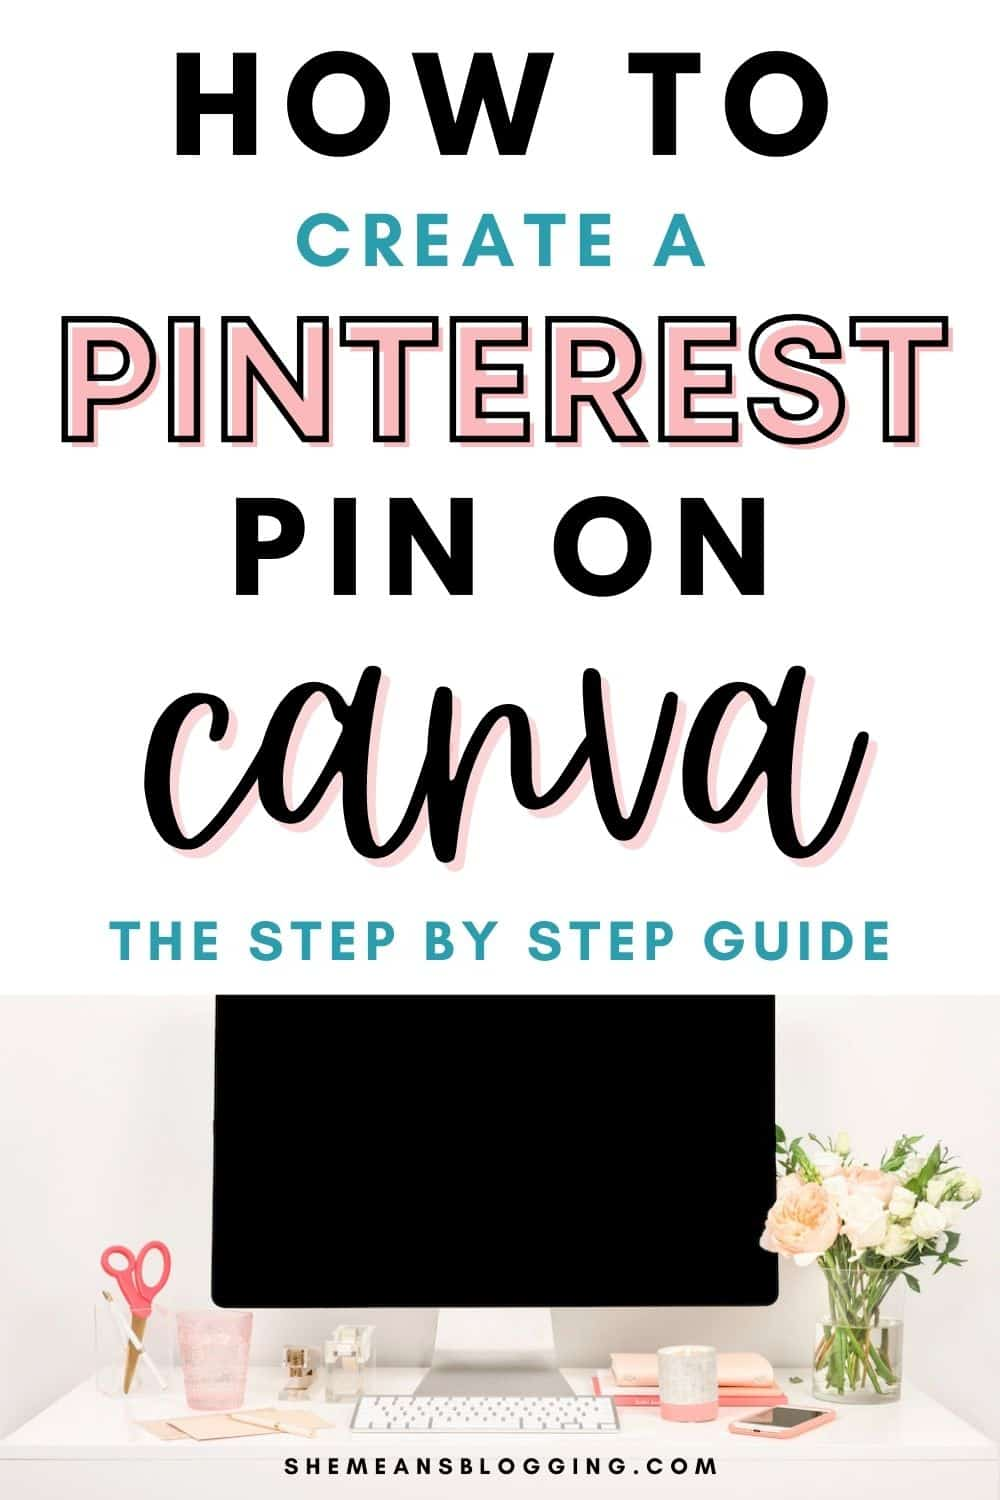 Step by step tutorial to create a Pinterest pin on Canva free. Follow this tutorial to create a pin in Canva with templates and without using Pinterest templates. Canva tips for Pinterest graphics. Canva tips for beginners